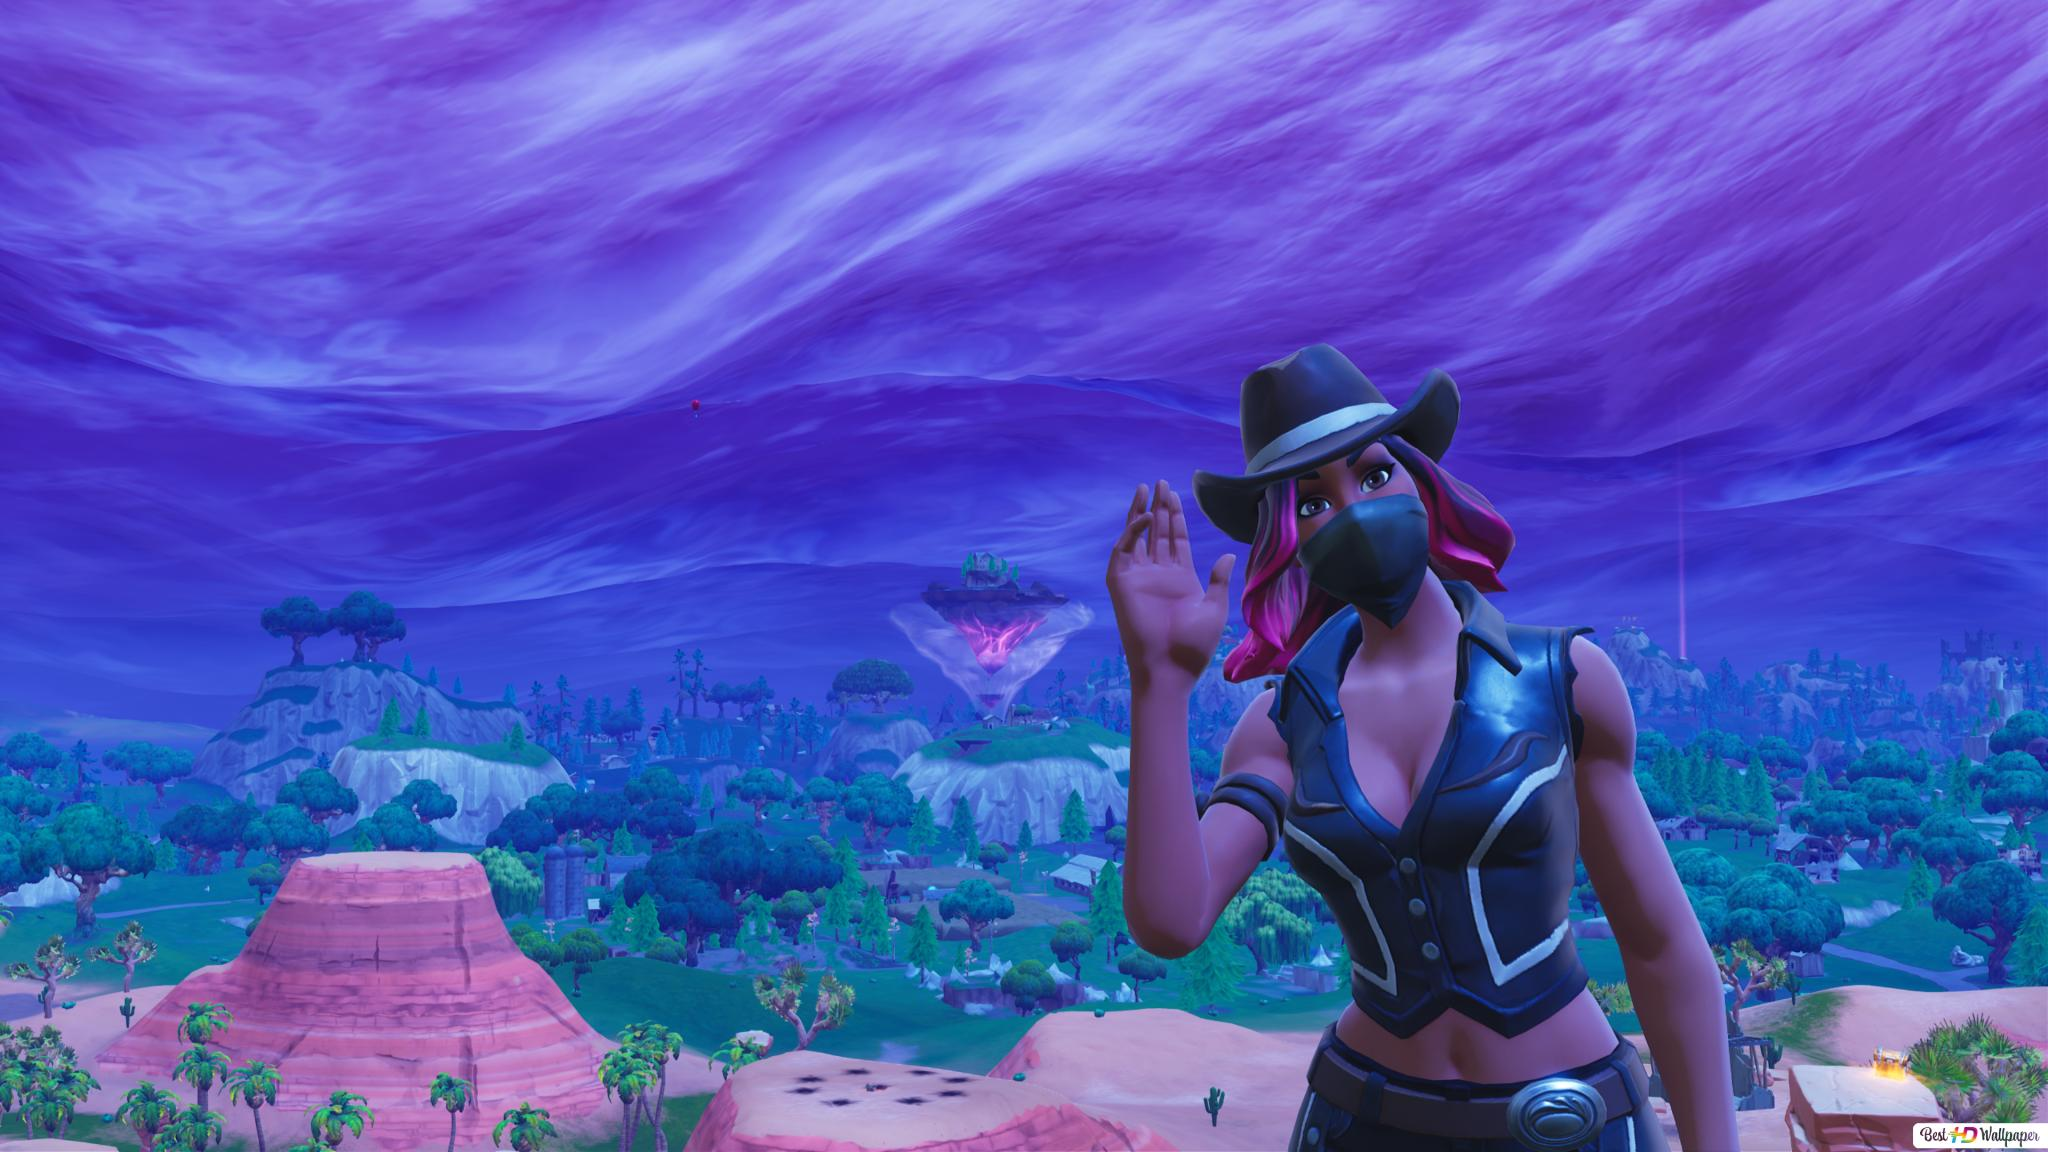 2048x1152 Fortnite Winter Season 2048x1152 Resolution Hd